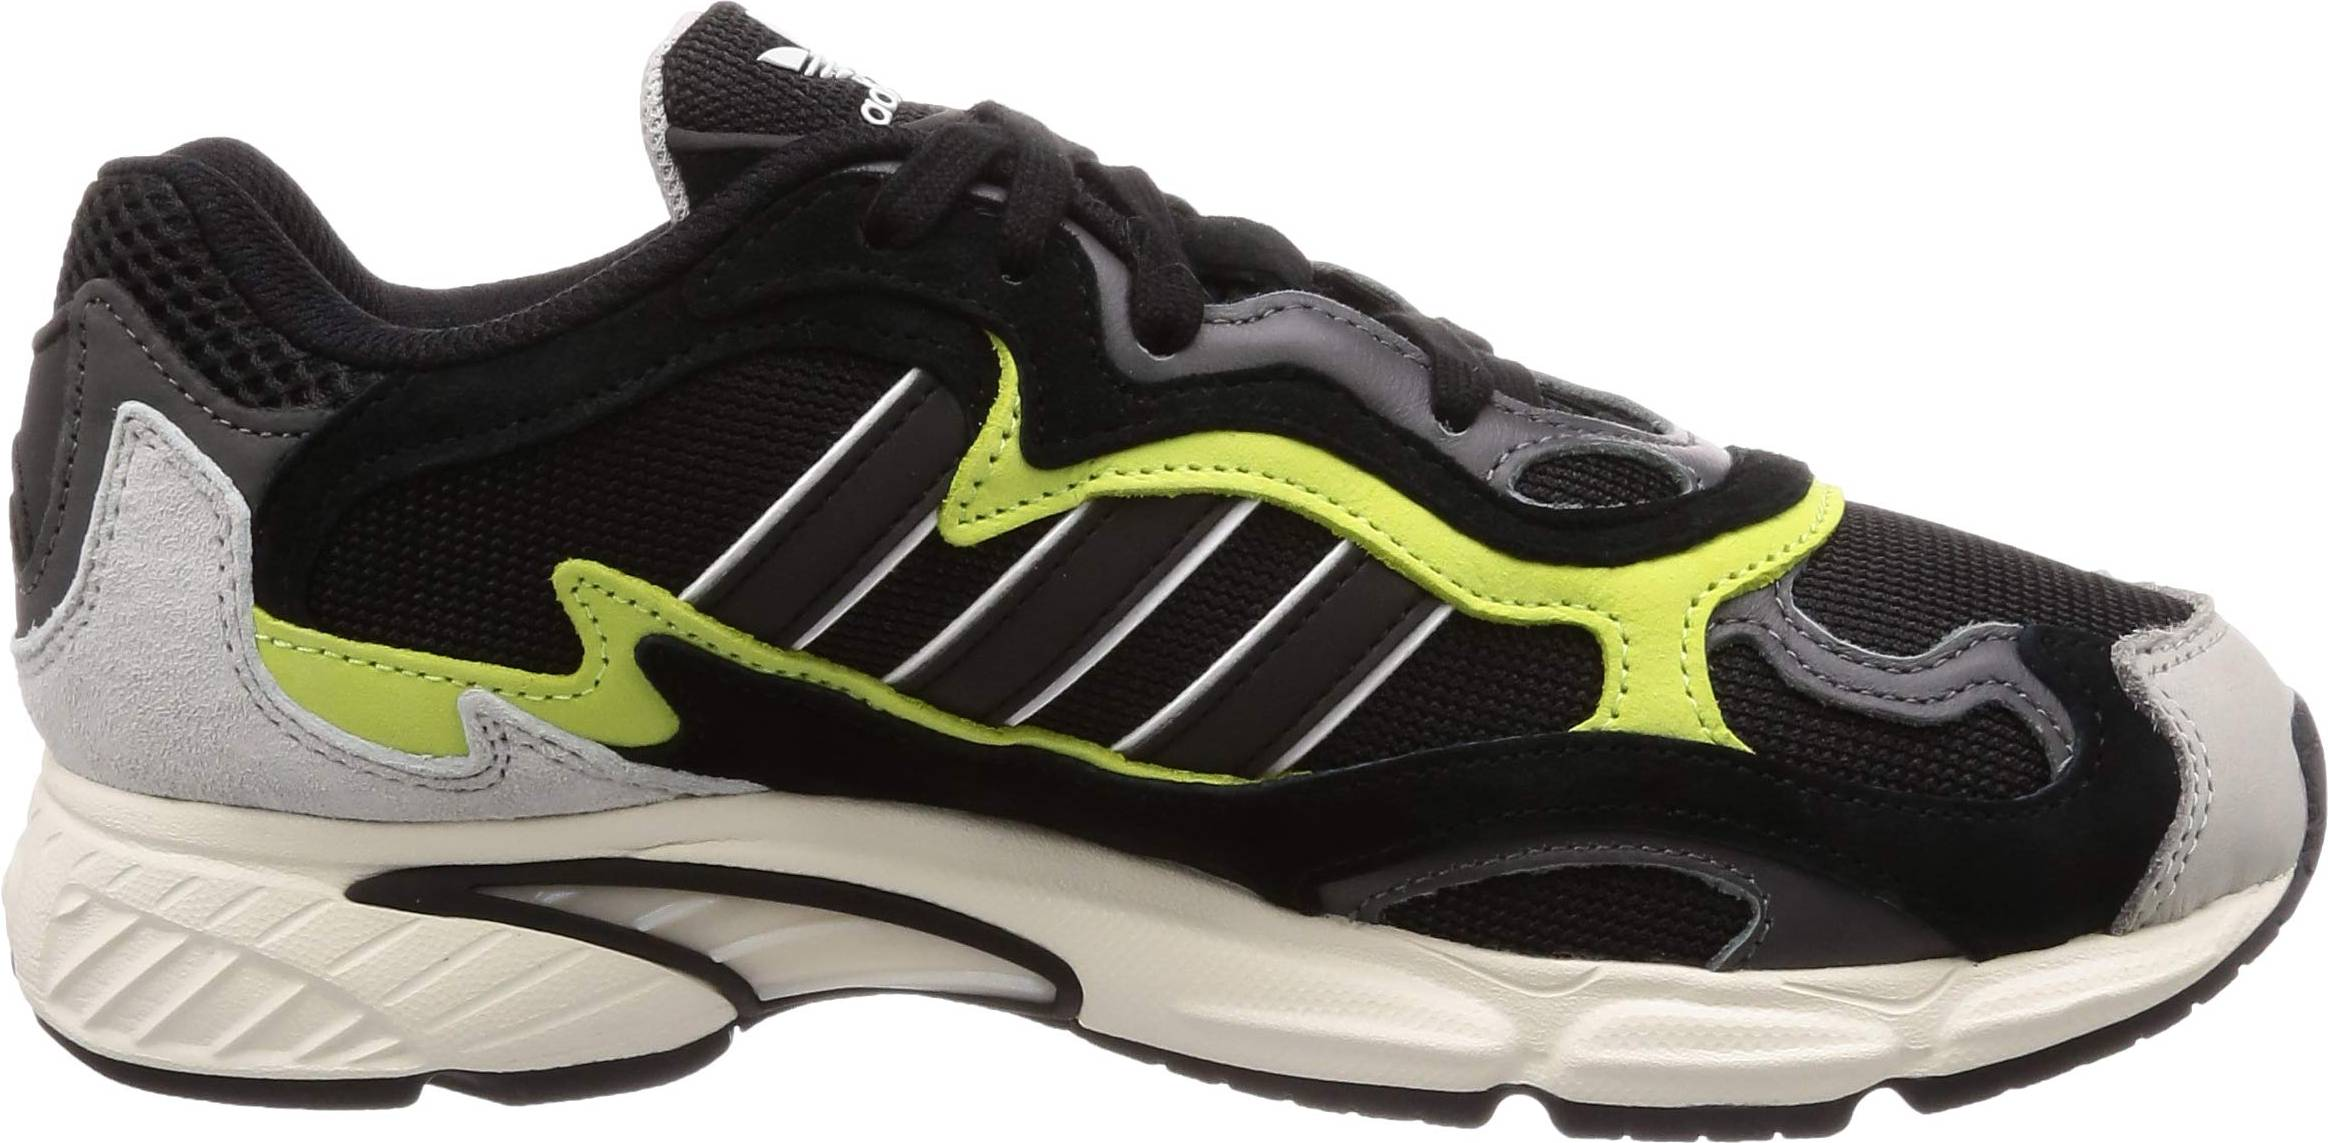 Only $55 + Review of Adidas Temper Run